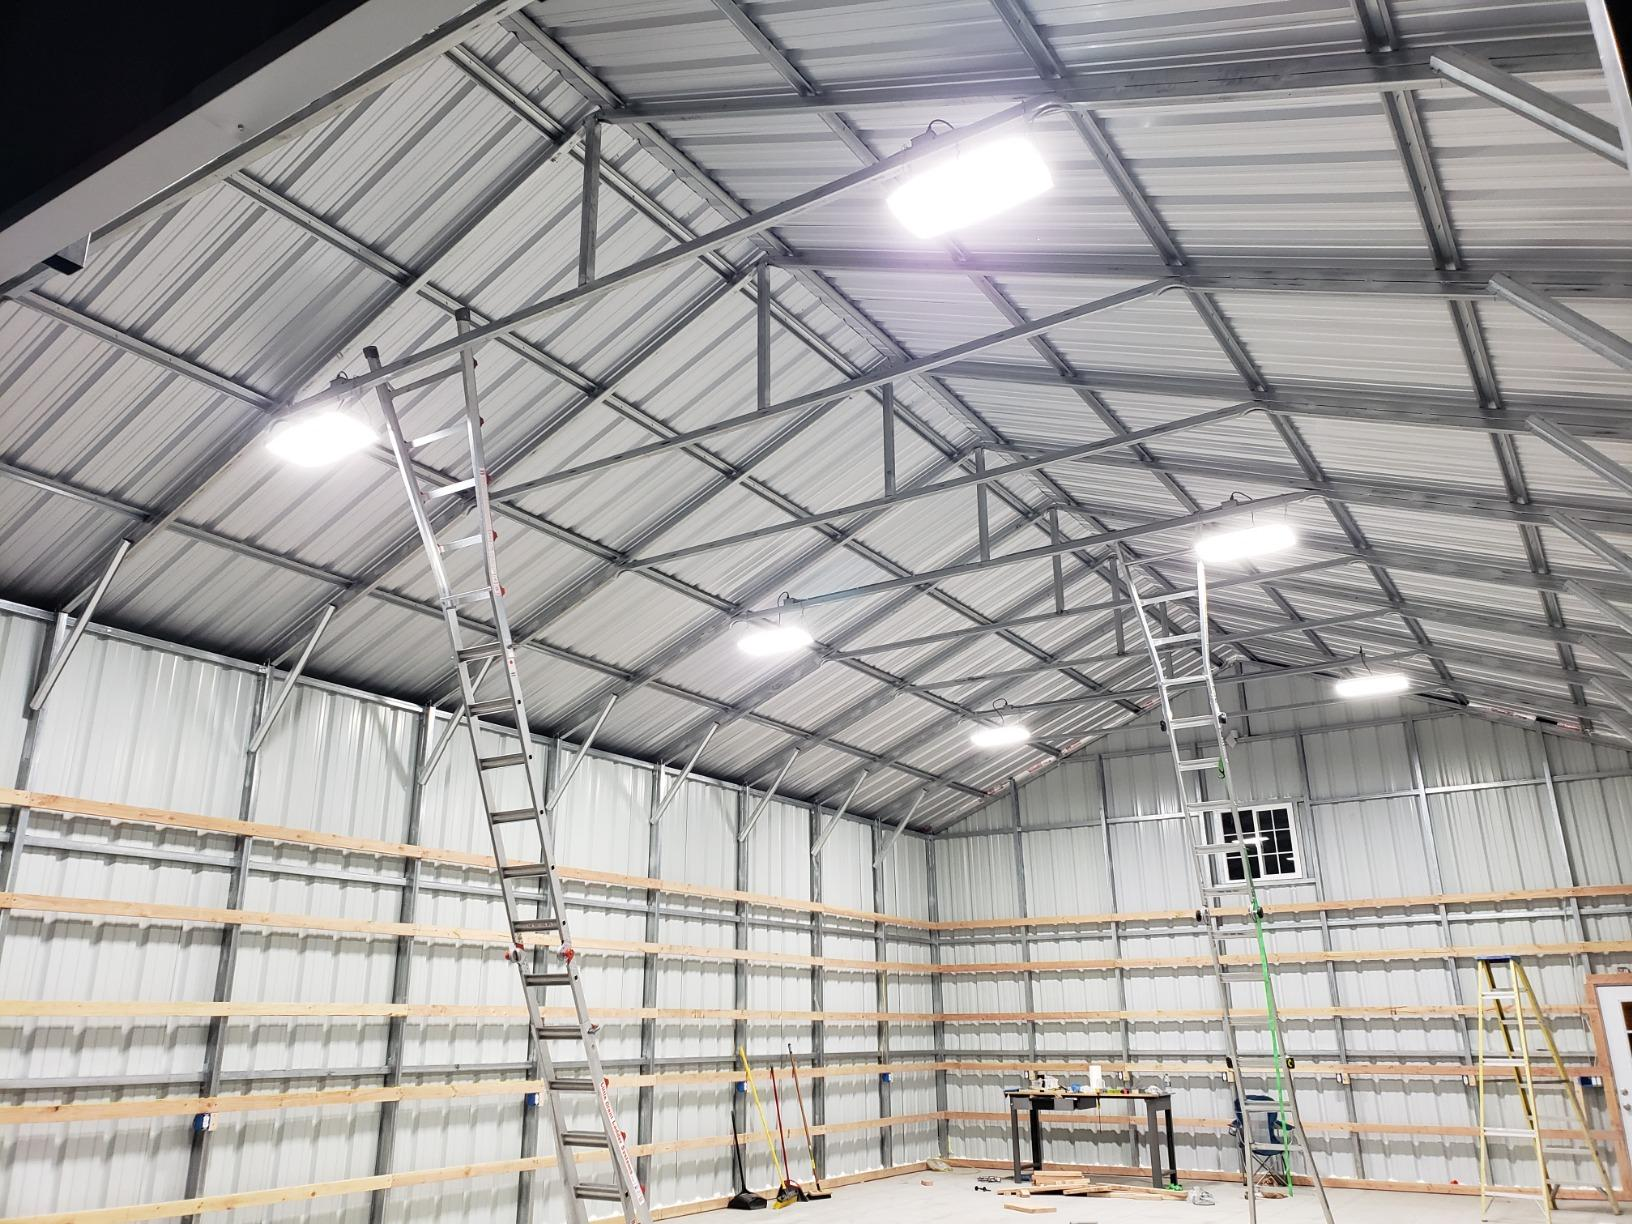 High Bay LED Lighting: Reduce Risks Involved With Working at Height